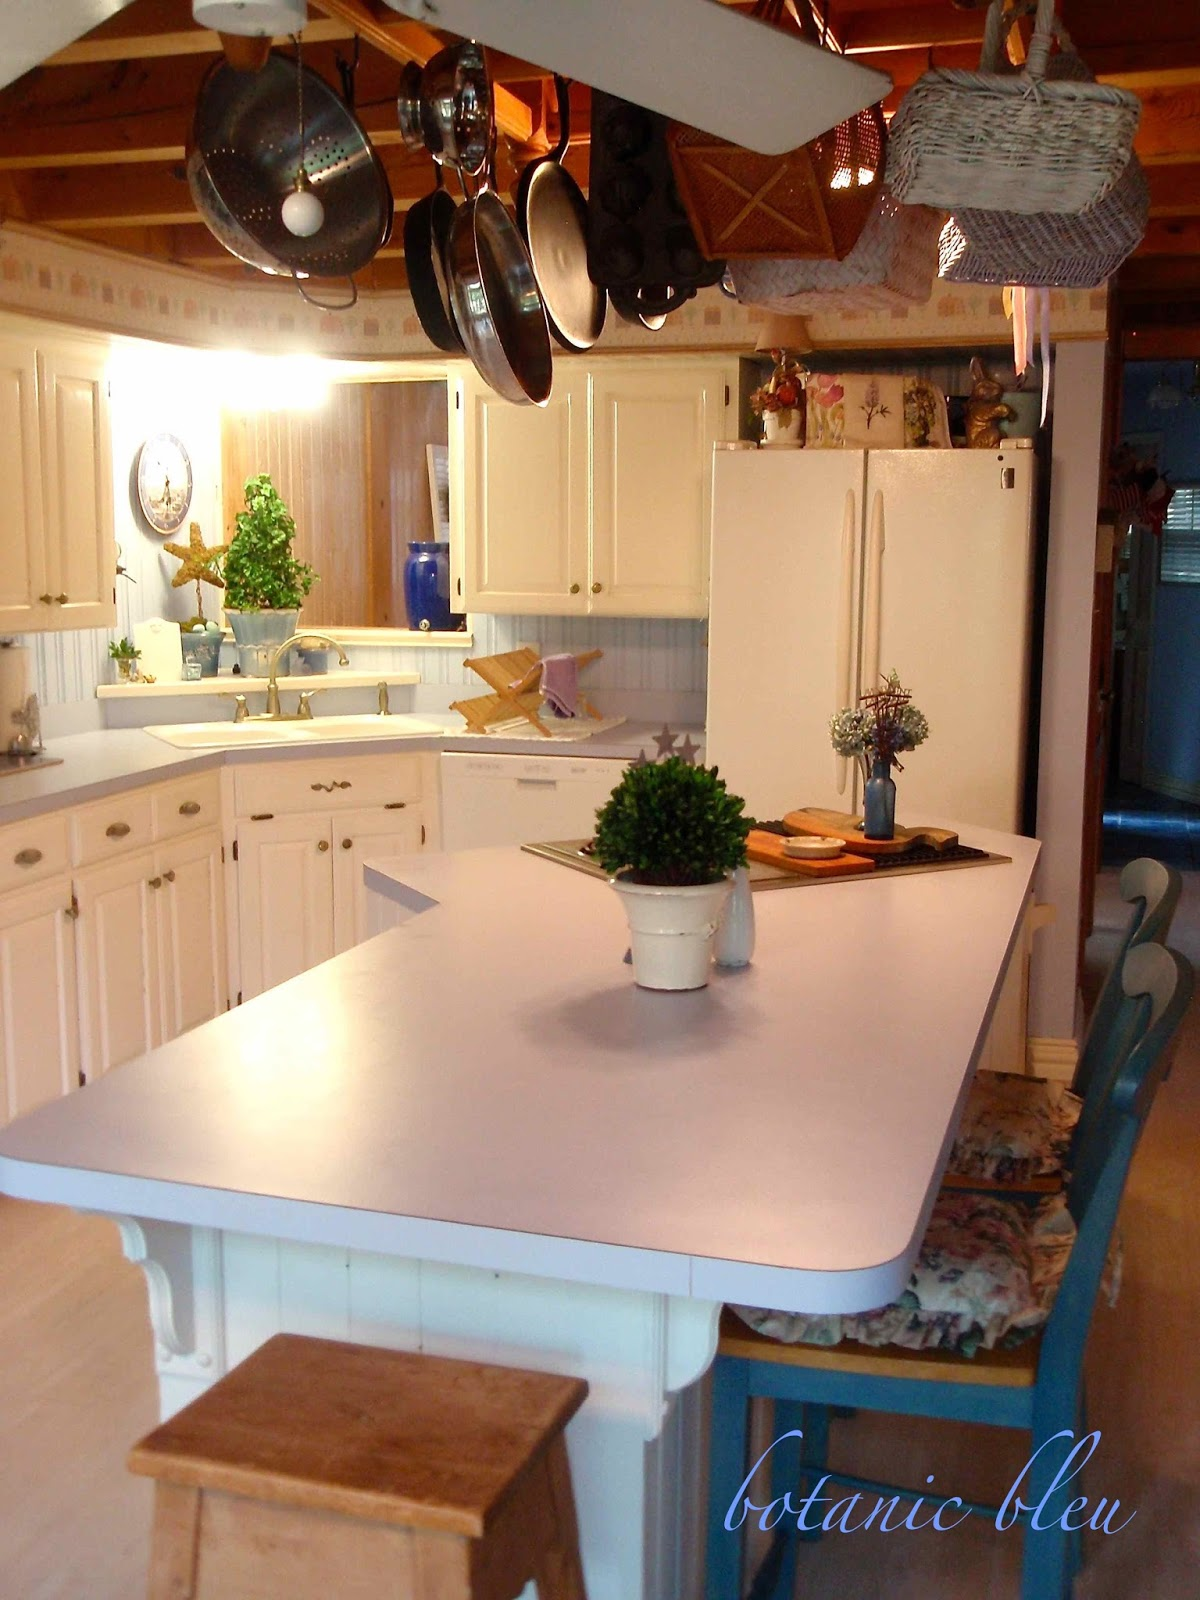 Kitchen Island with Sink Built In